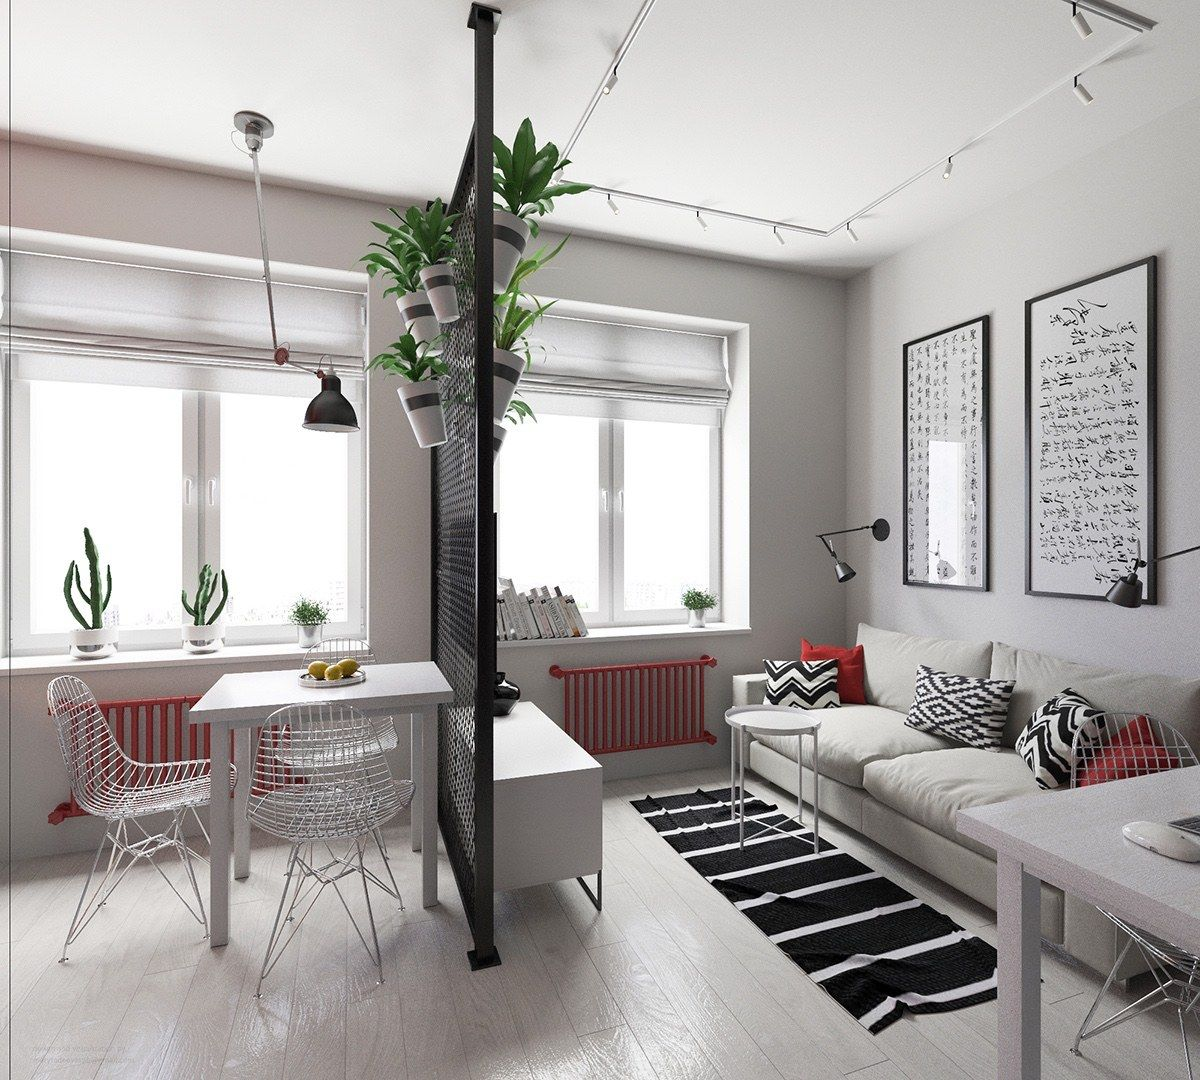 Fashionable small room design